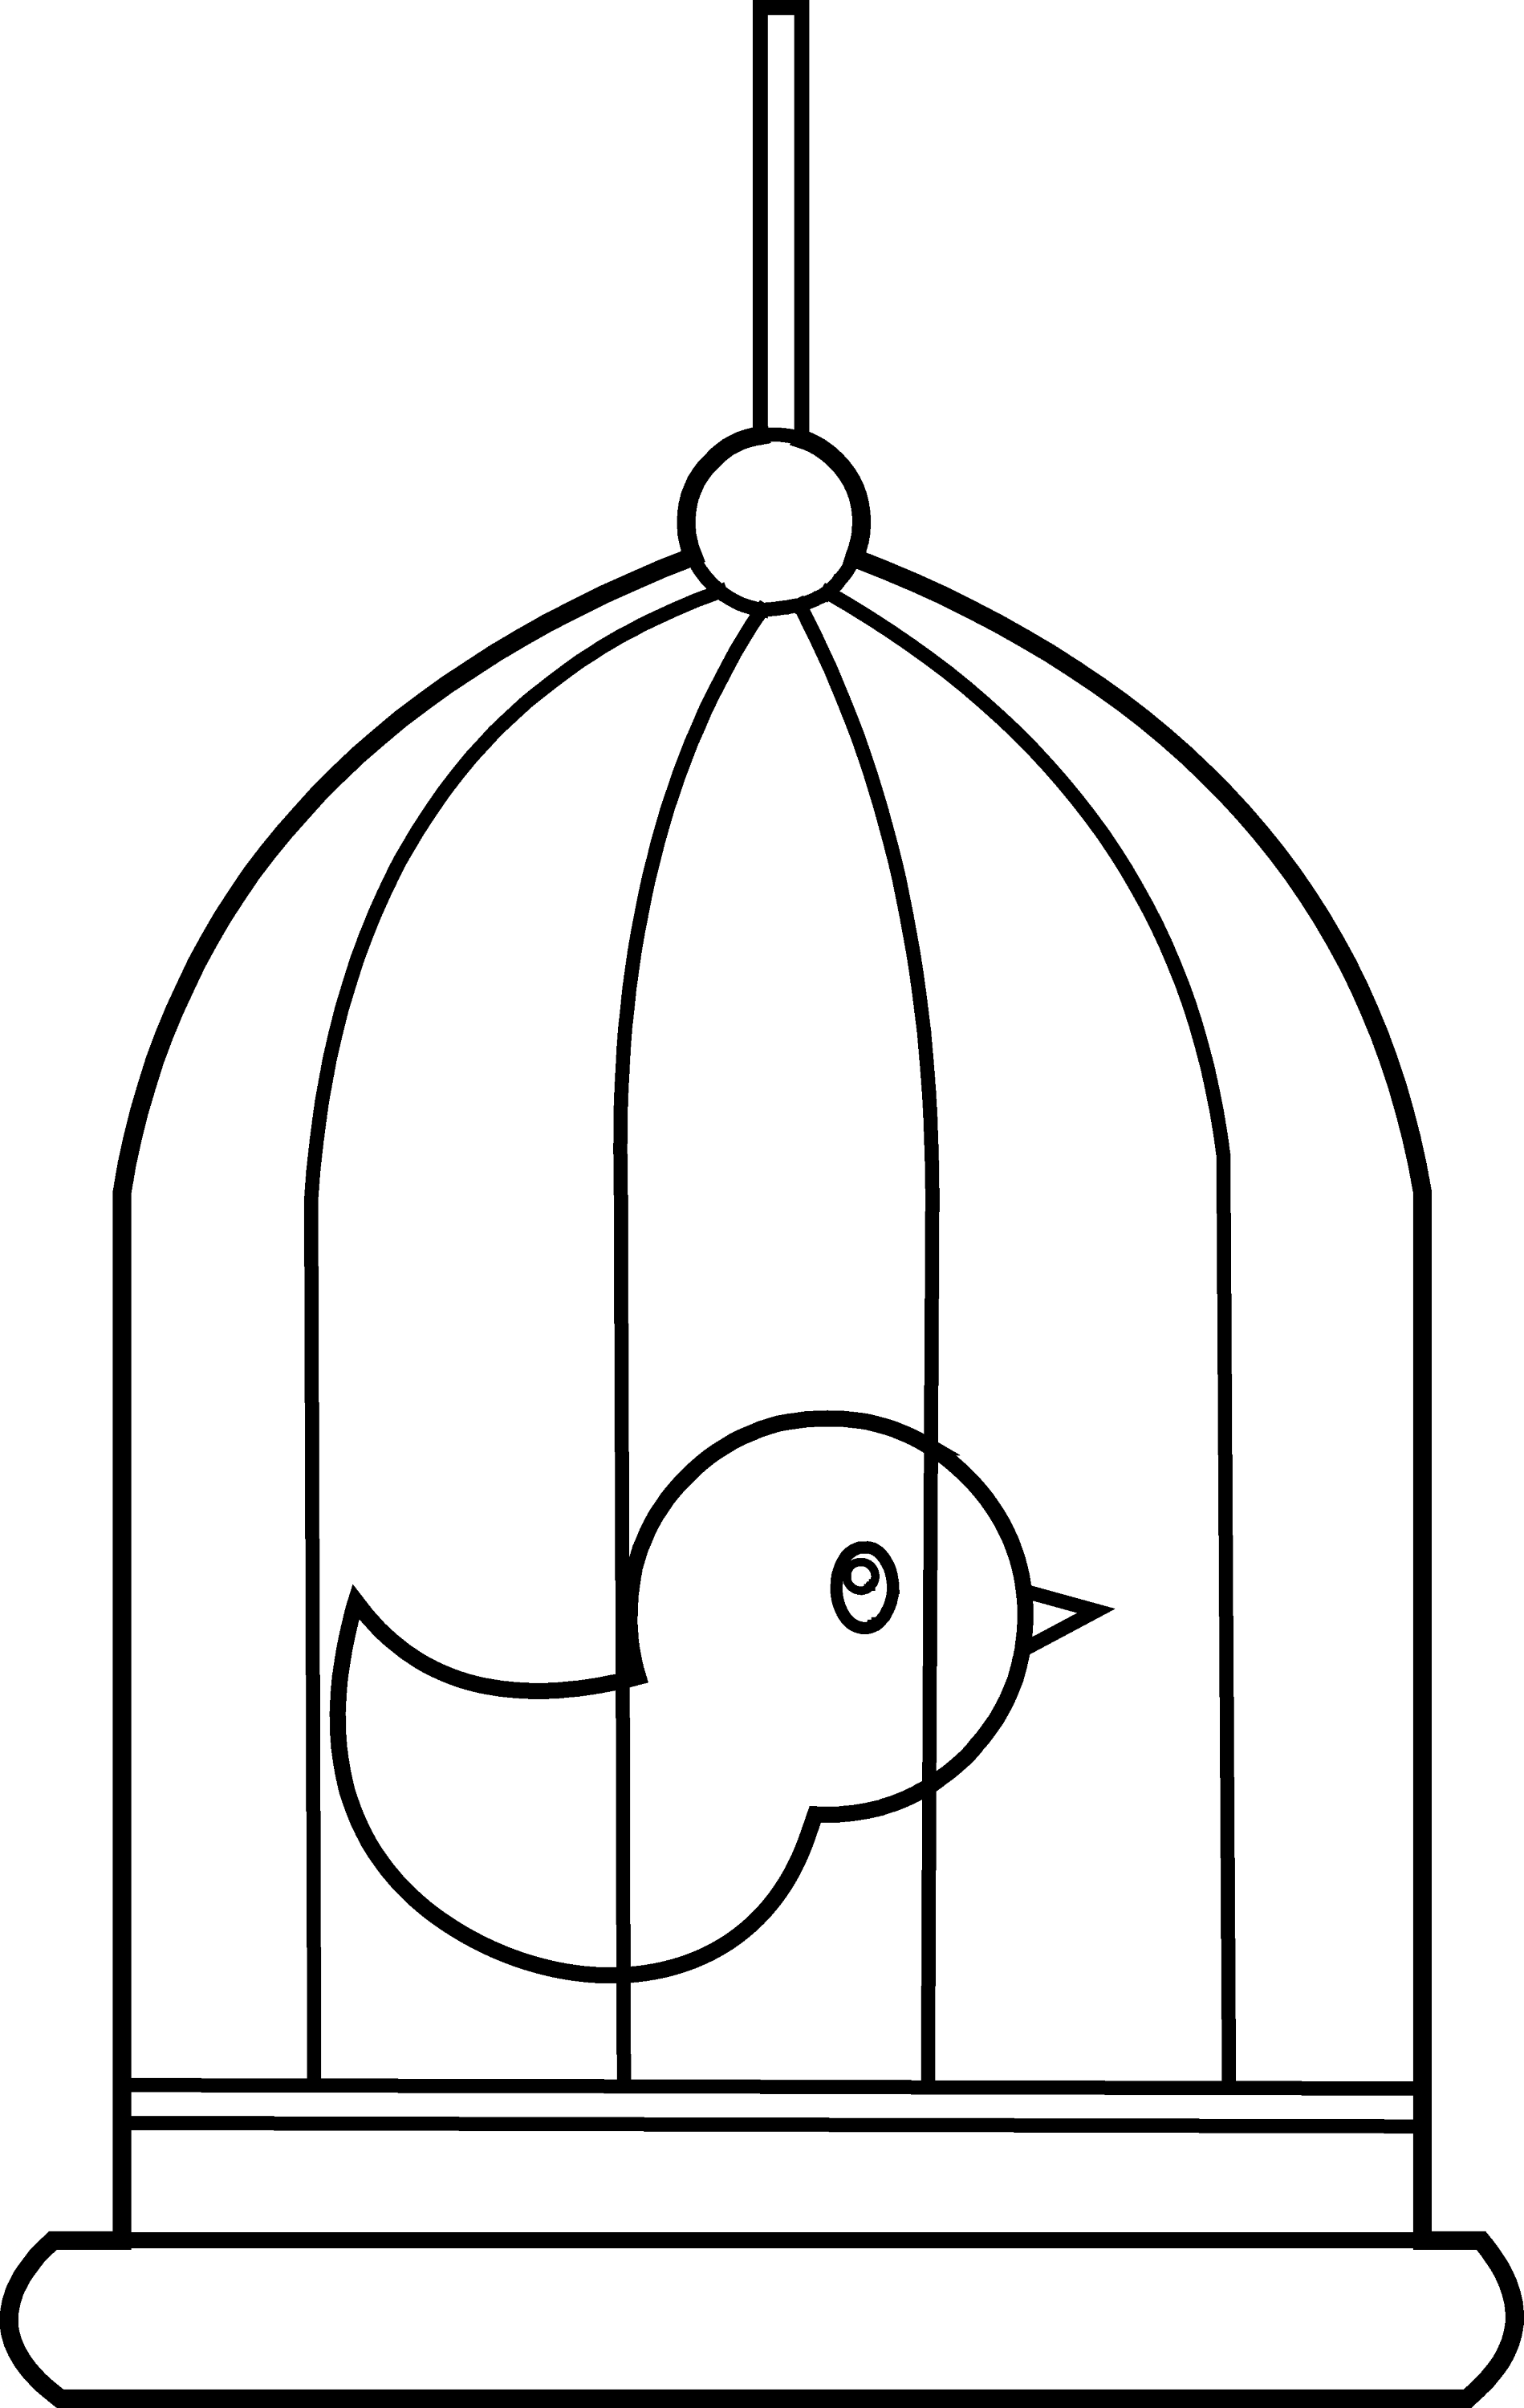 bird cage coloring pages - photo#2